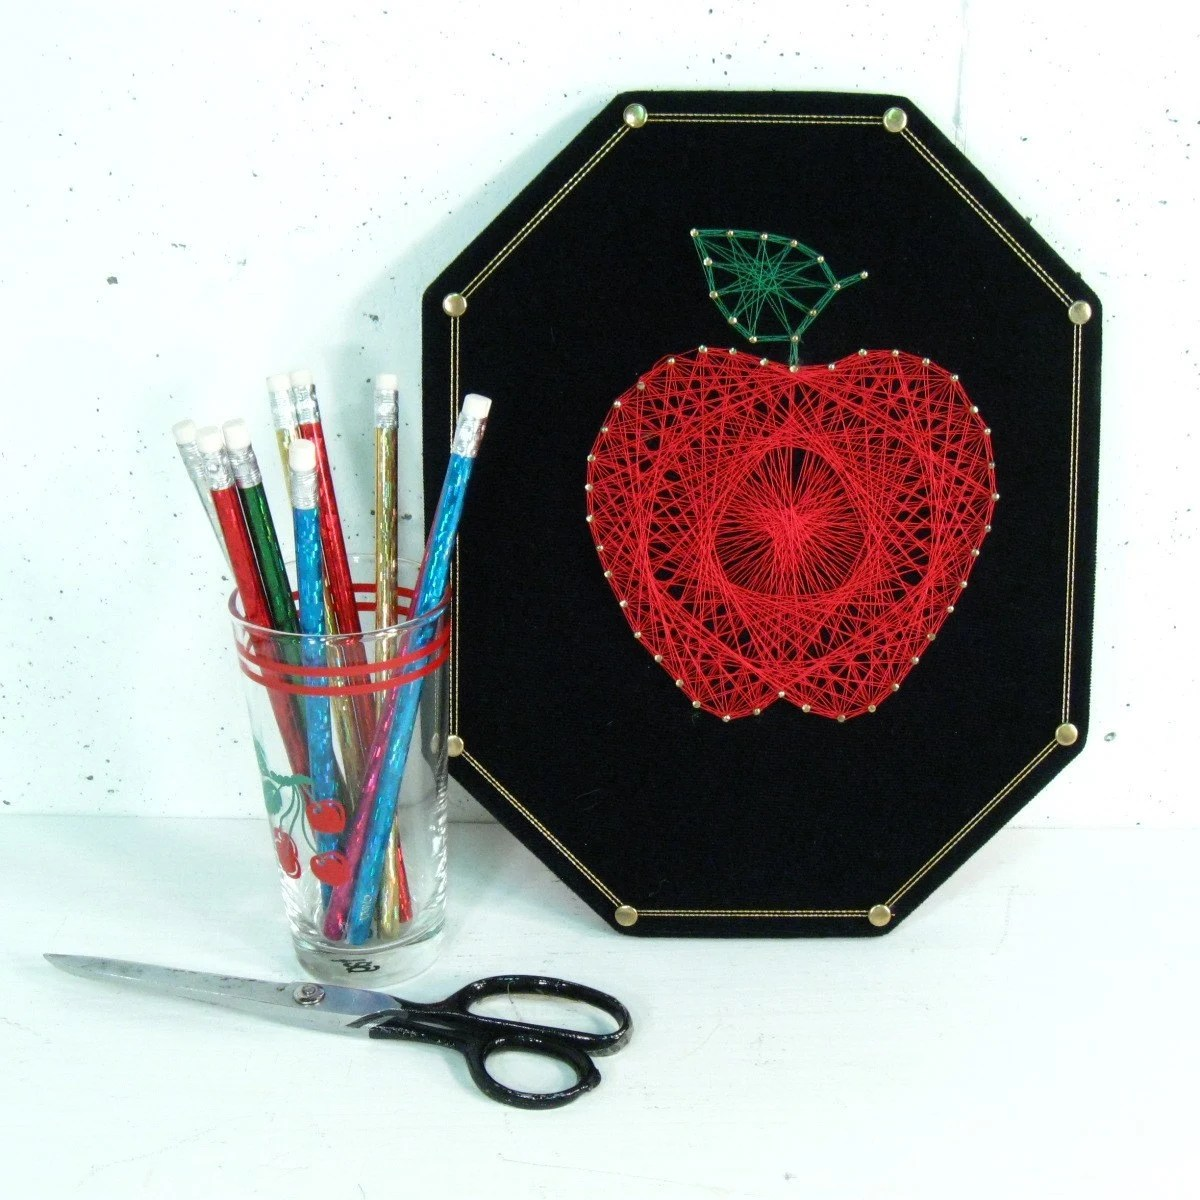 Vintage String Art Red Apple Arts And Crafts Project